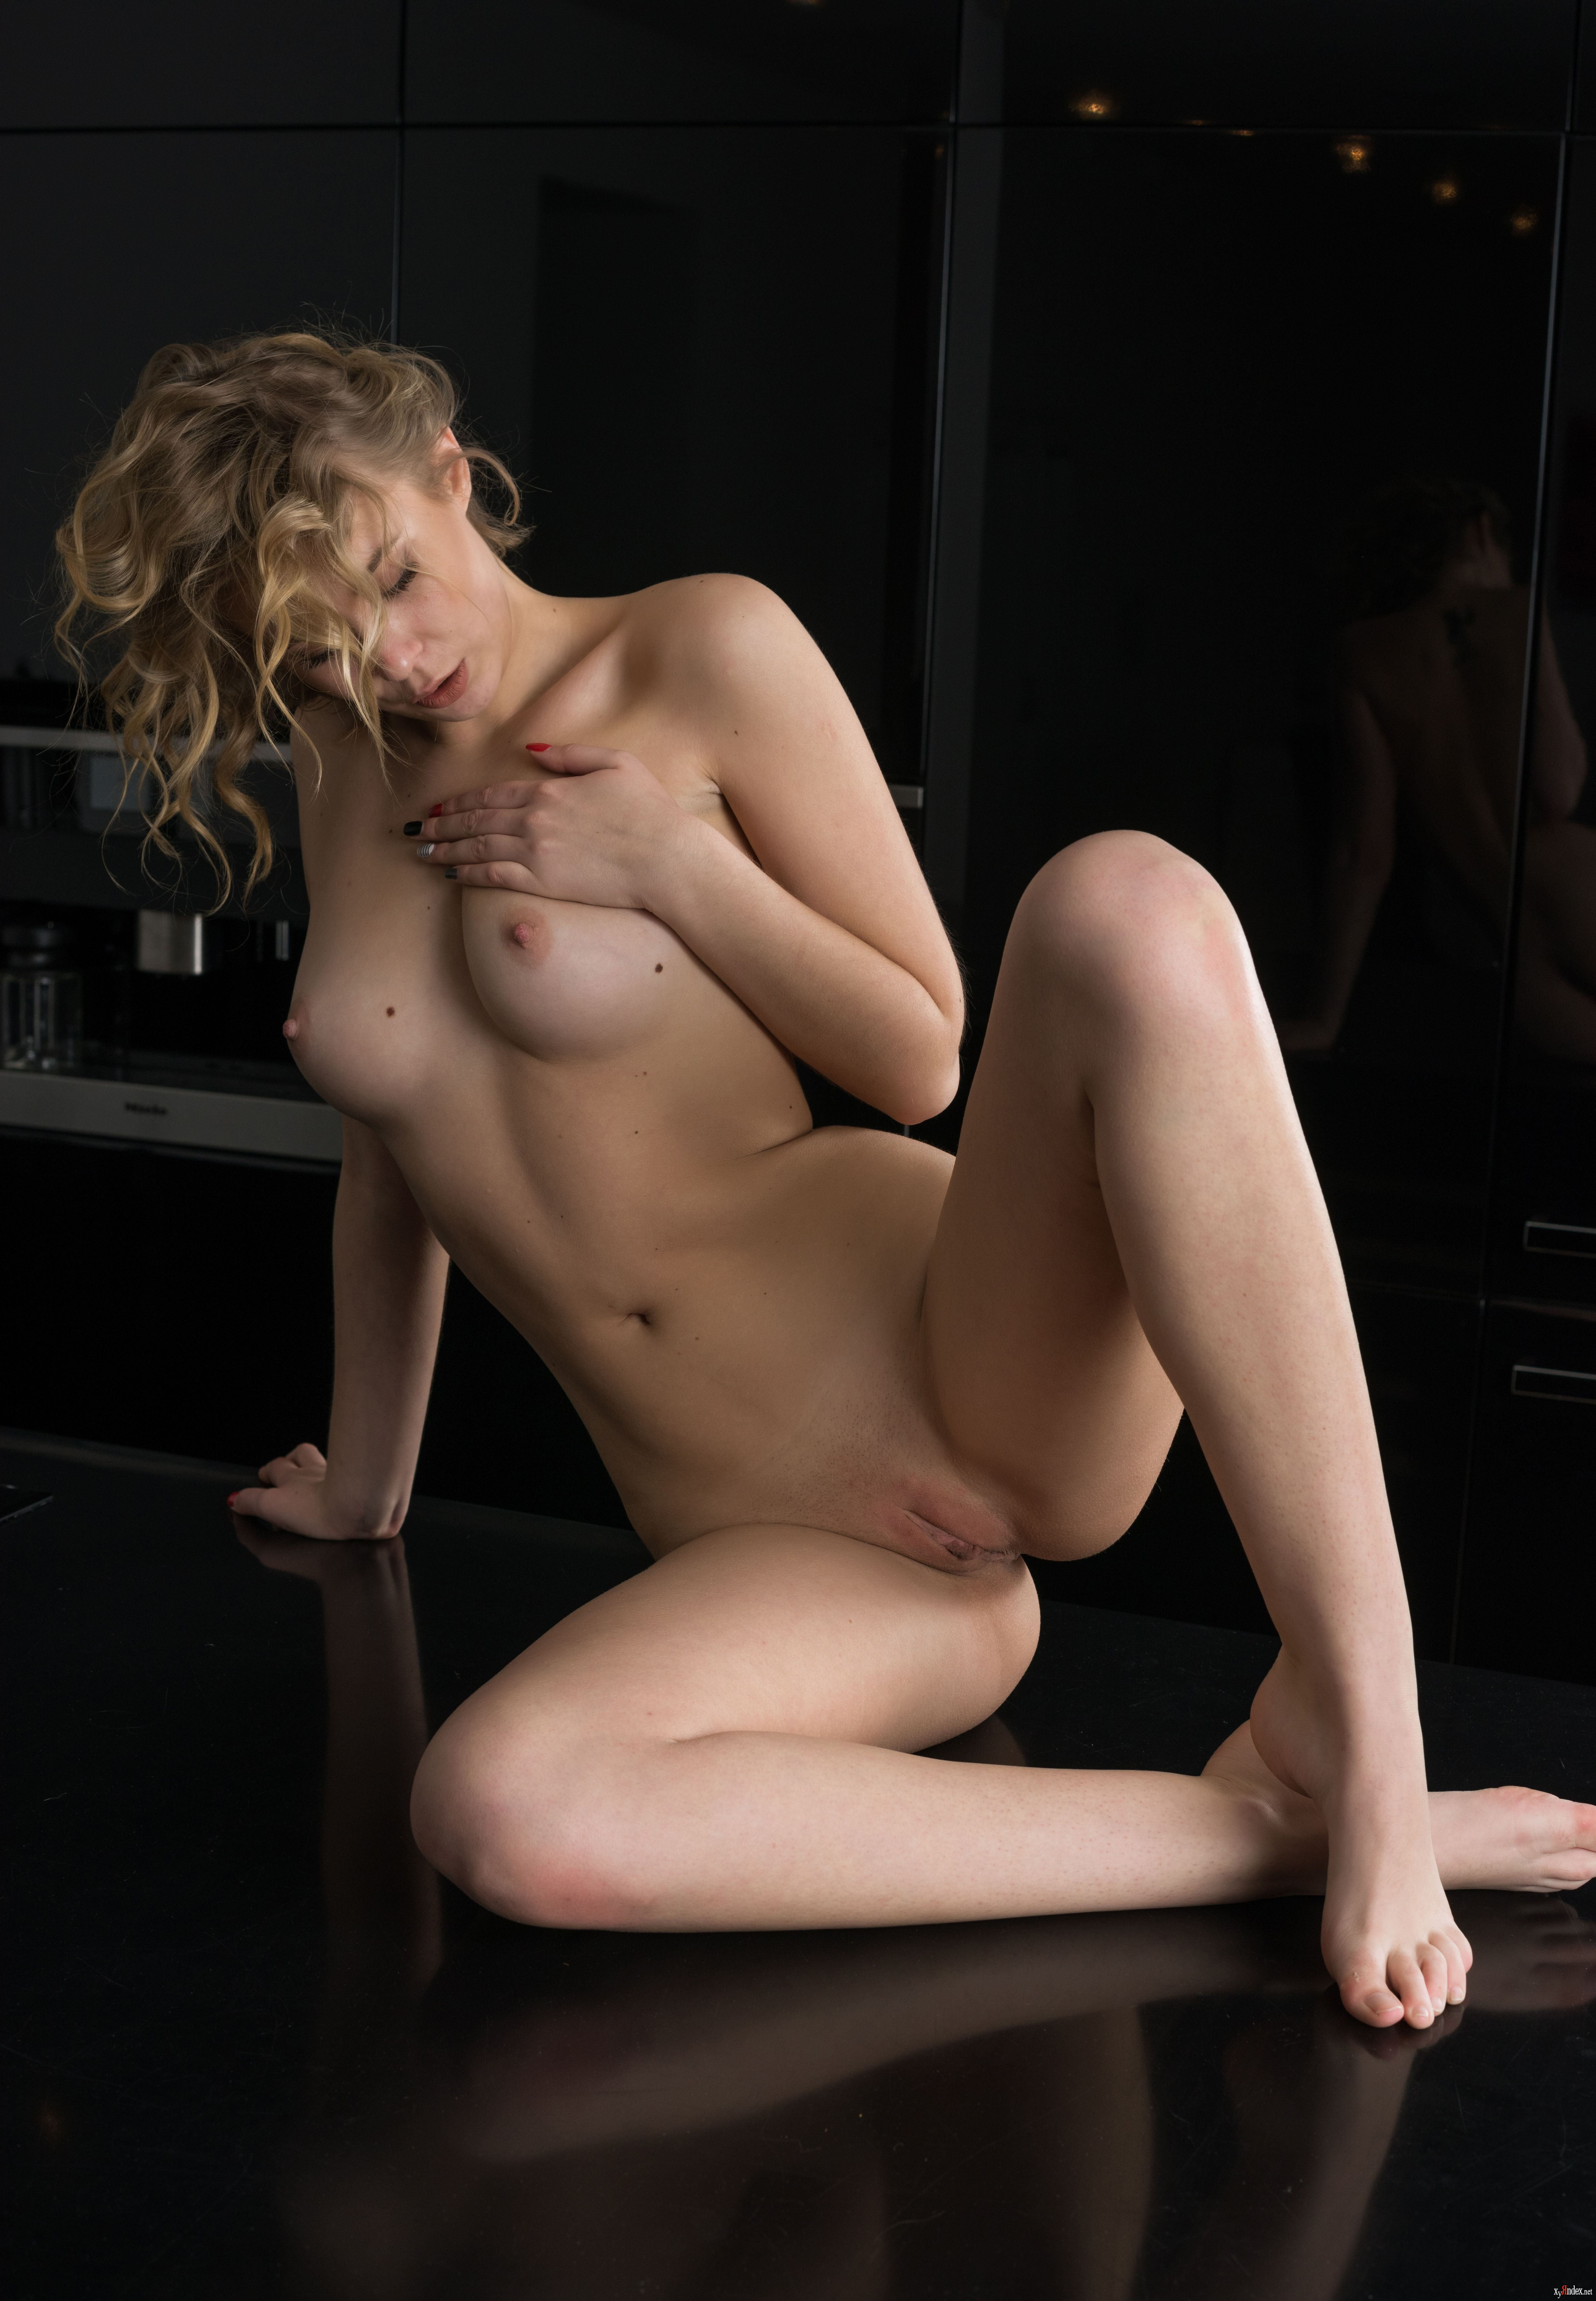 casey-tori-nude-free-xxx-blowjob-movies-and-videos